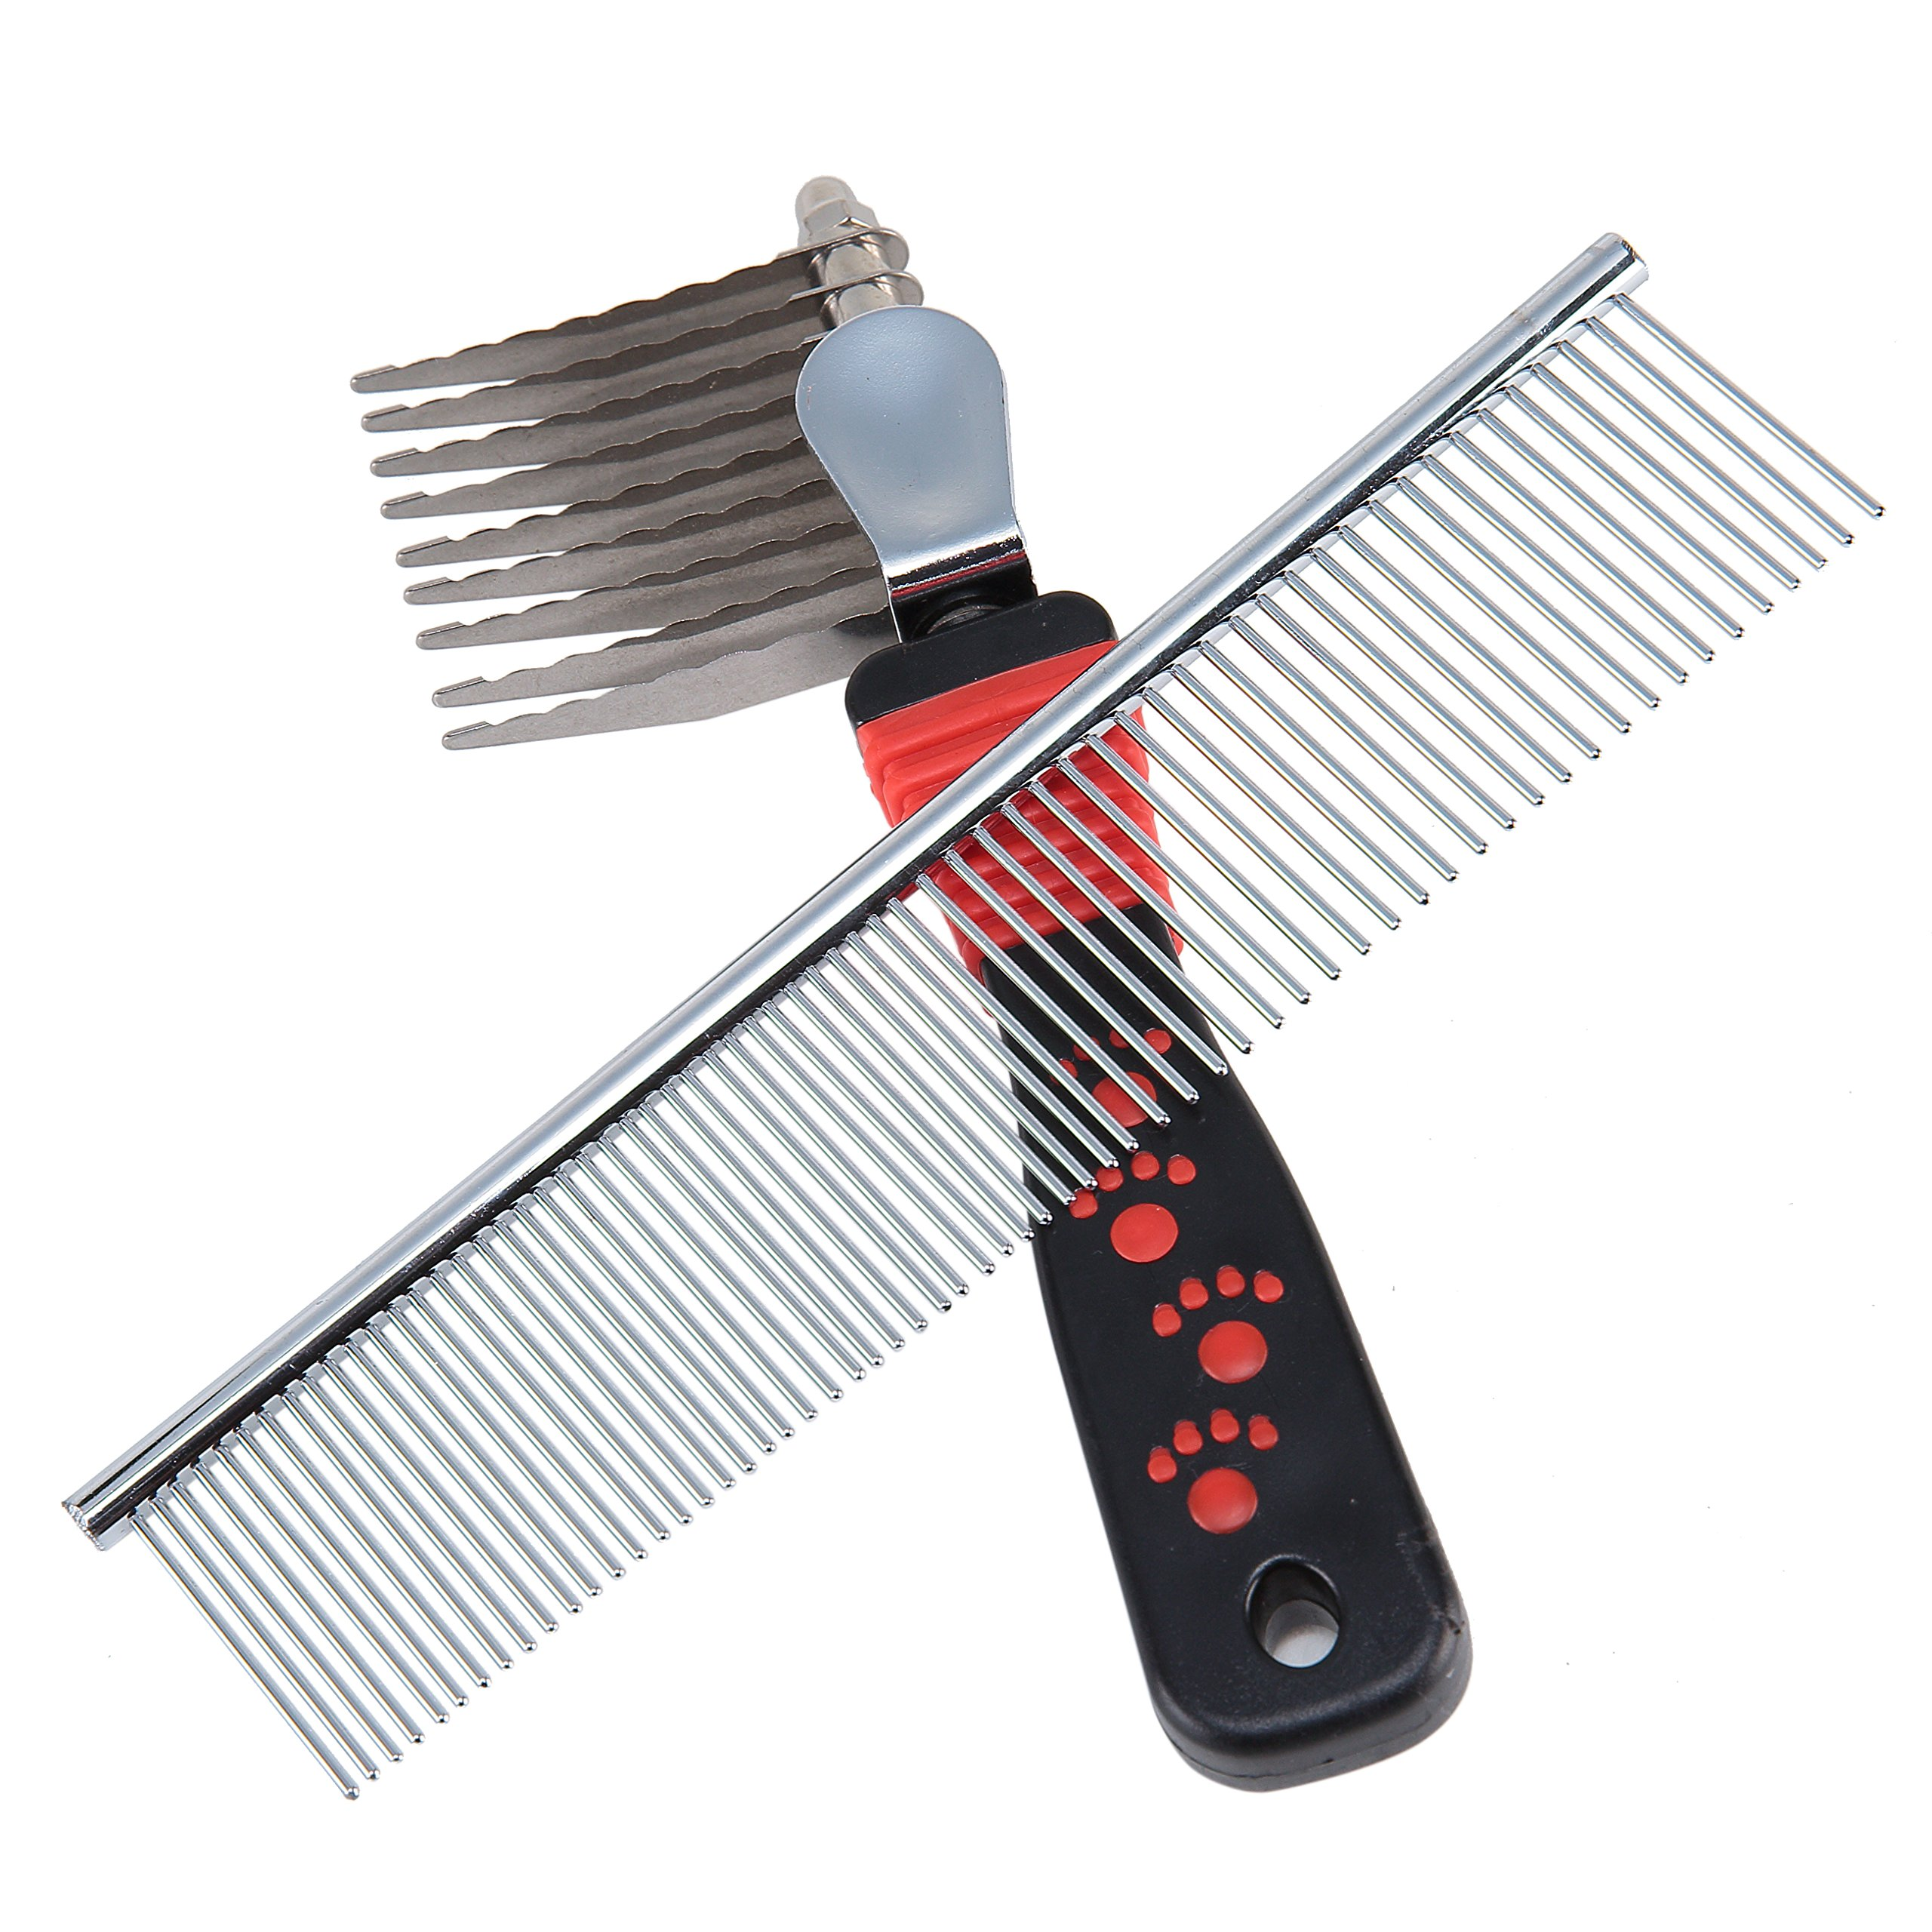 Sysrion Dog Comb, Pet Grooming Comb Tool - Dog Rake Comb Trimmer Stainless Steel Dog Comb with by Sysrion (Image #2)